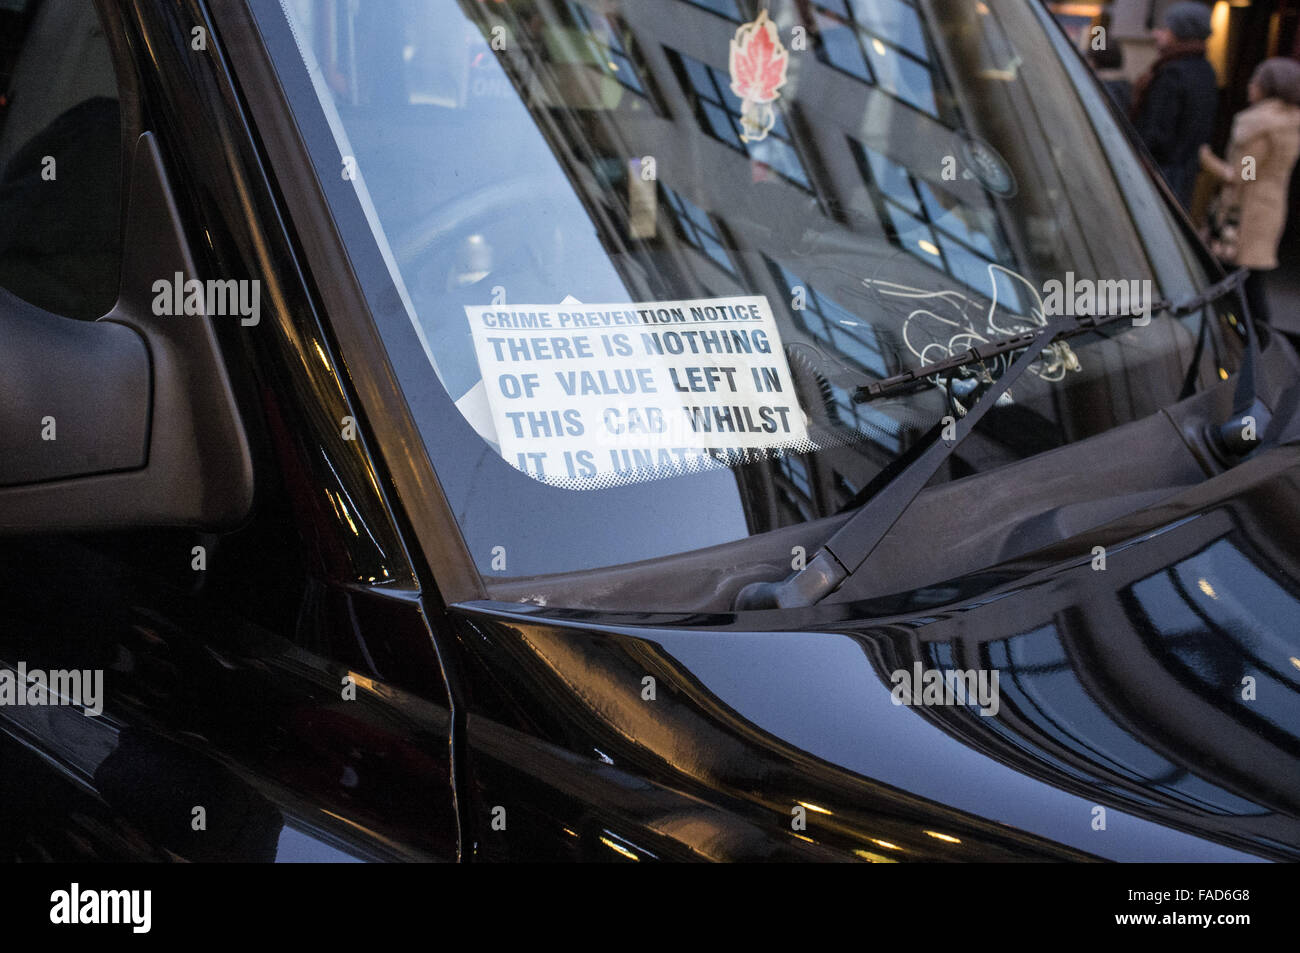 'There is nothing of value left in this cab whilst it is unattended' sign inside London black taxi cab window - Stock Image